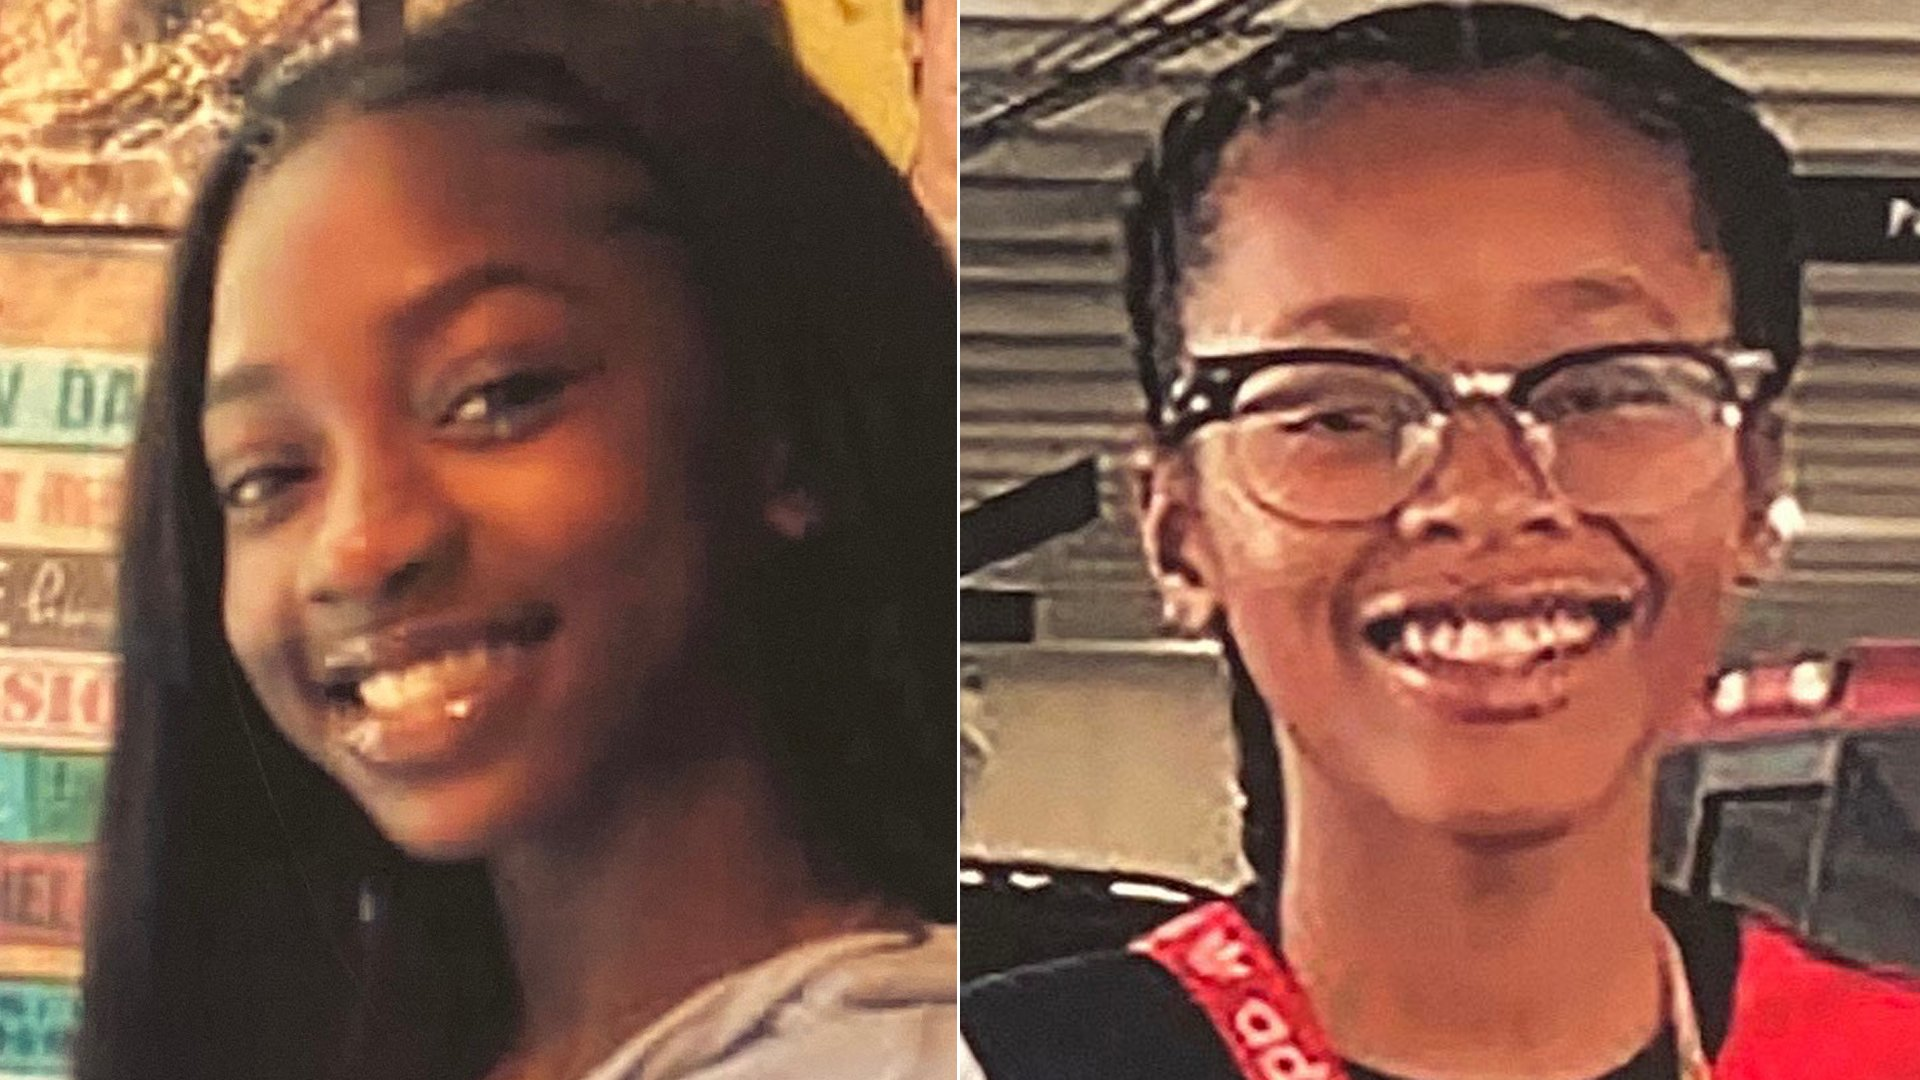 Dalelaja Hearn and Erin Lavender appear in photos released by the Los Angeles County Sheriff's Department on Jan. 15, 2020.